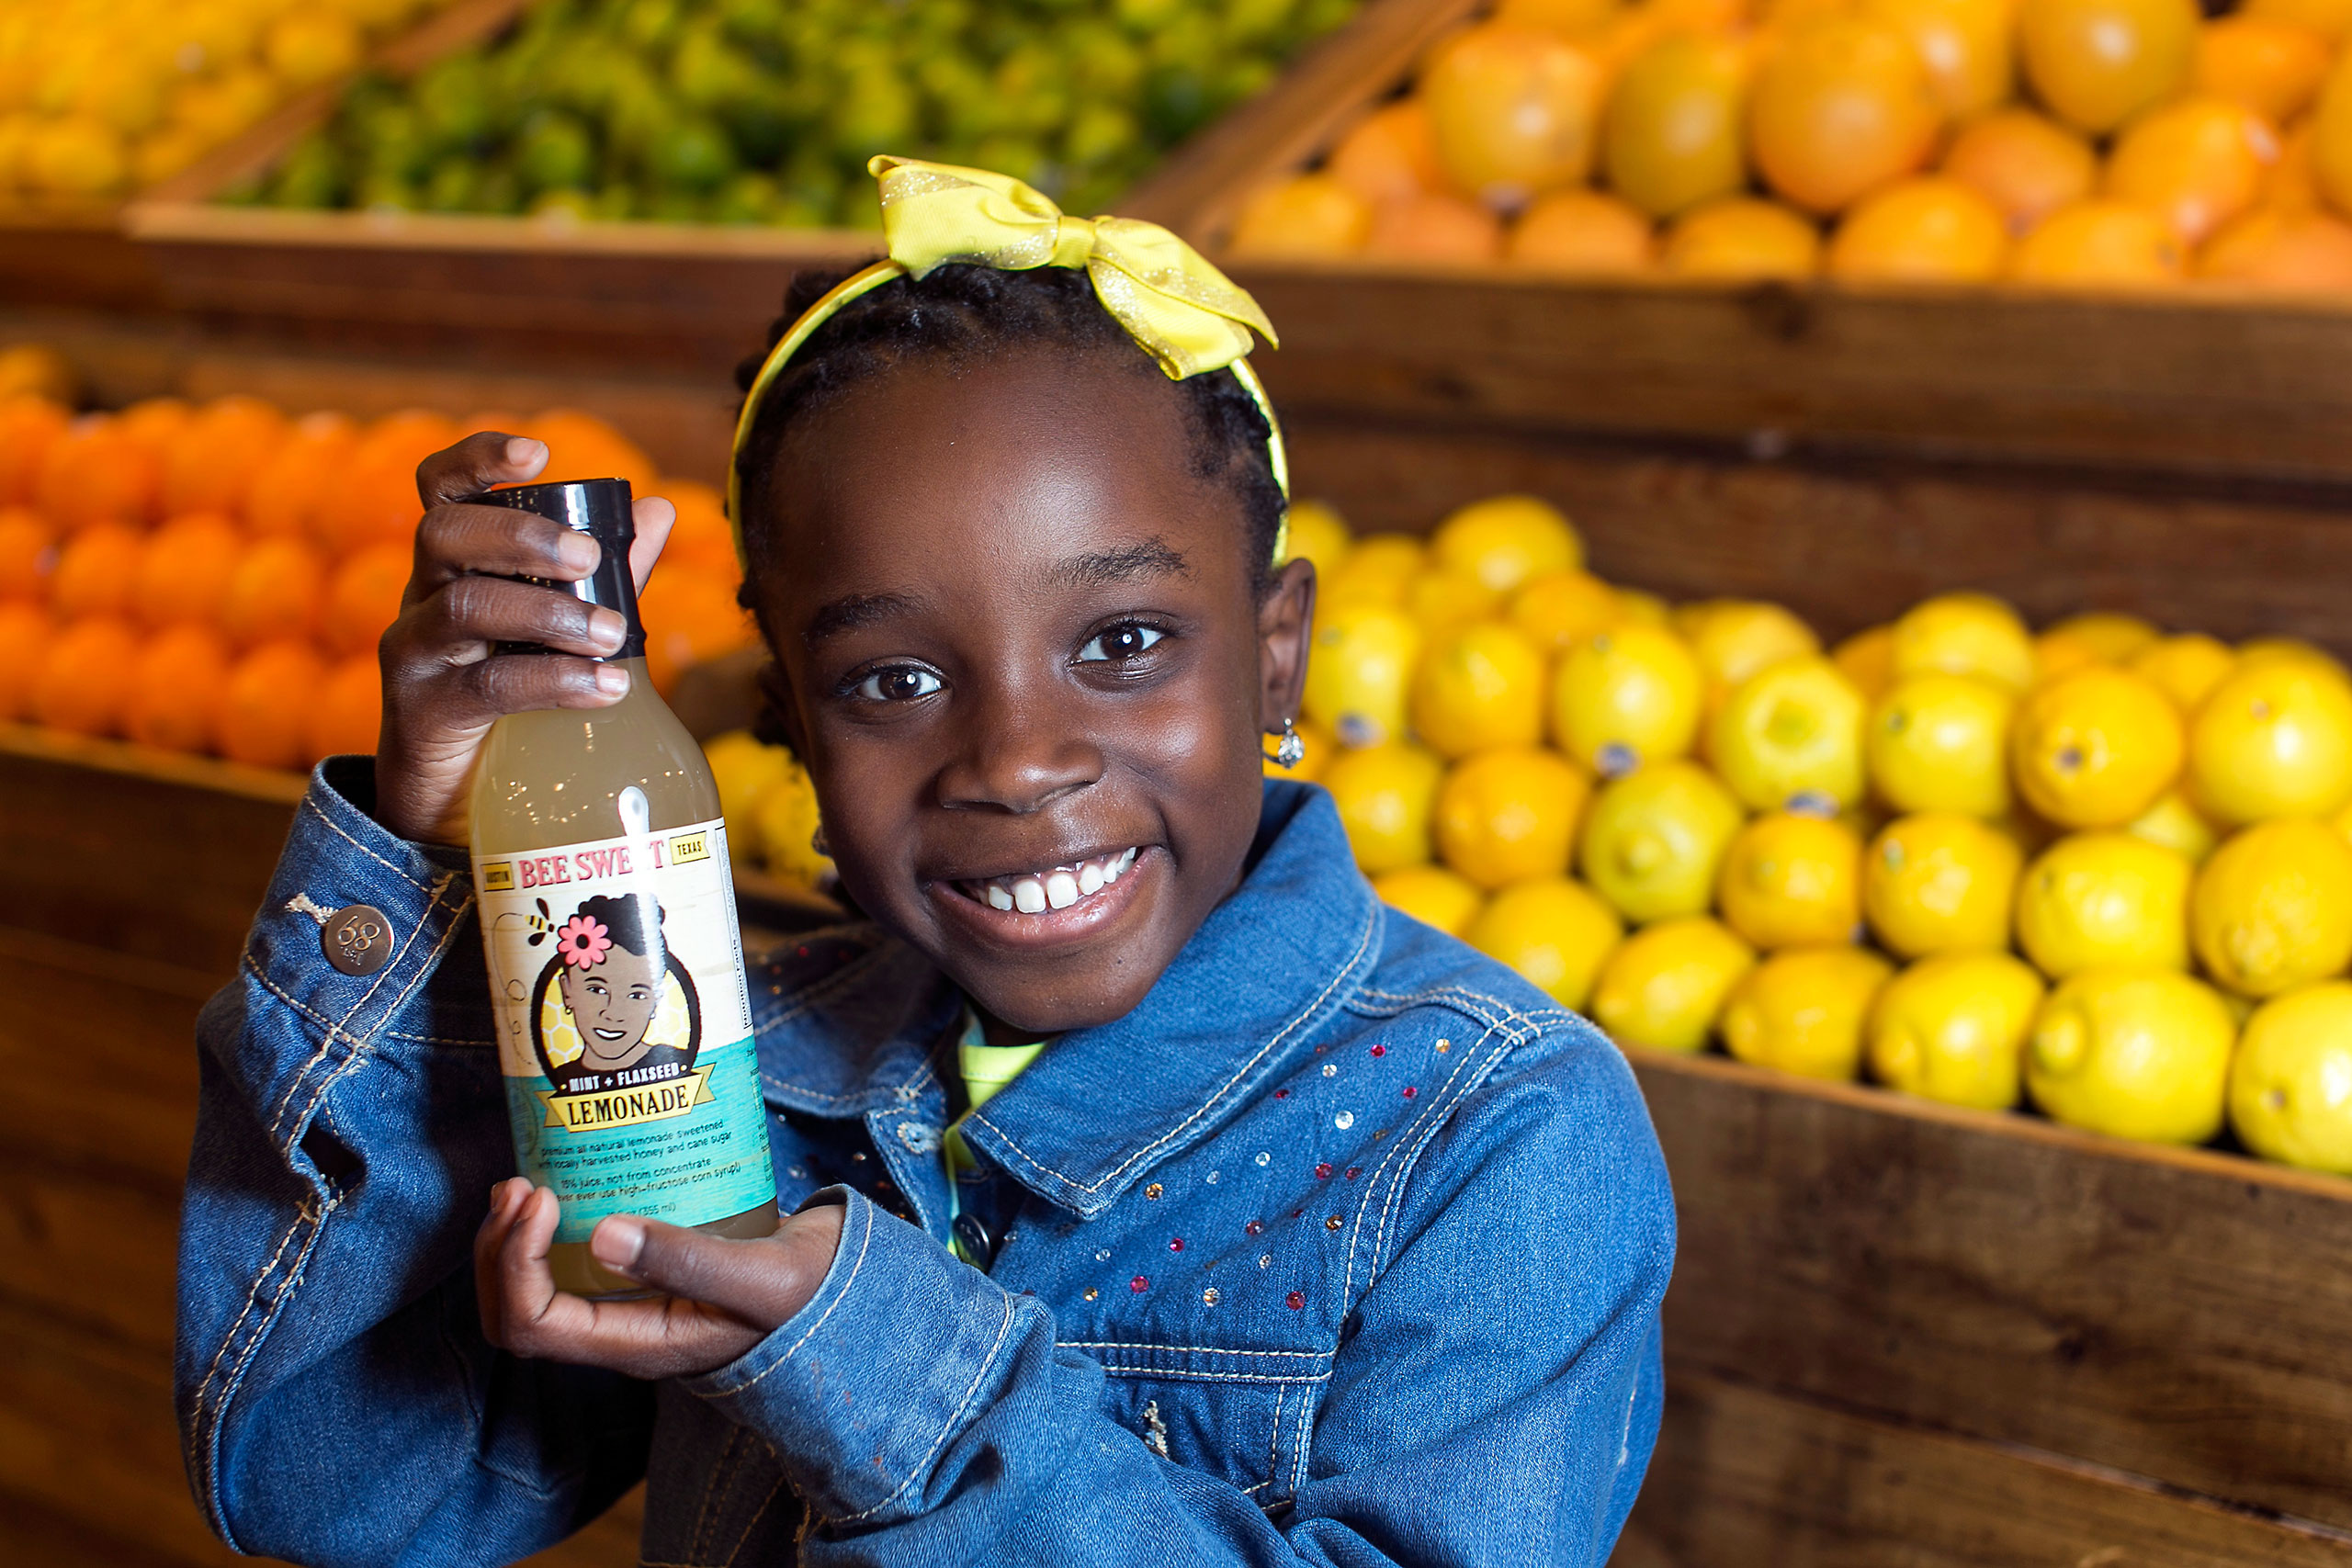 Mikaila Ulmer holds a bottle of BeeSweet Lemonade.